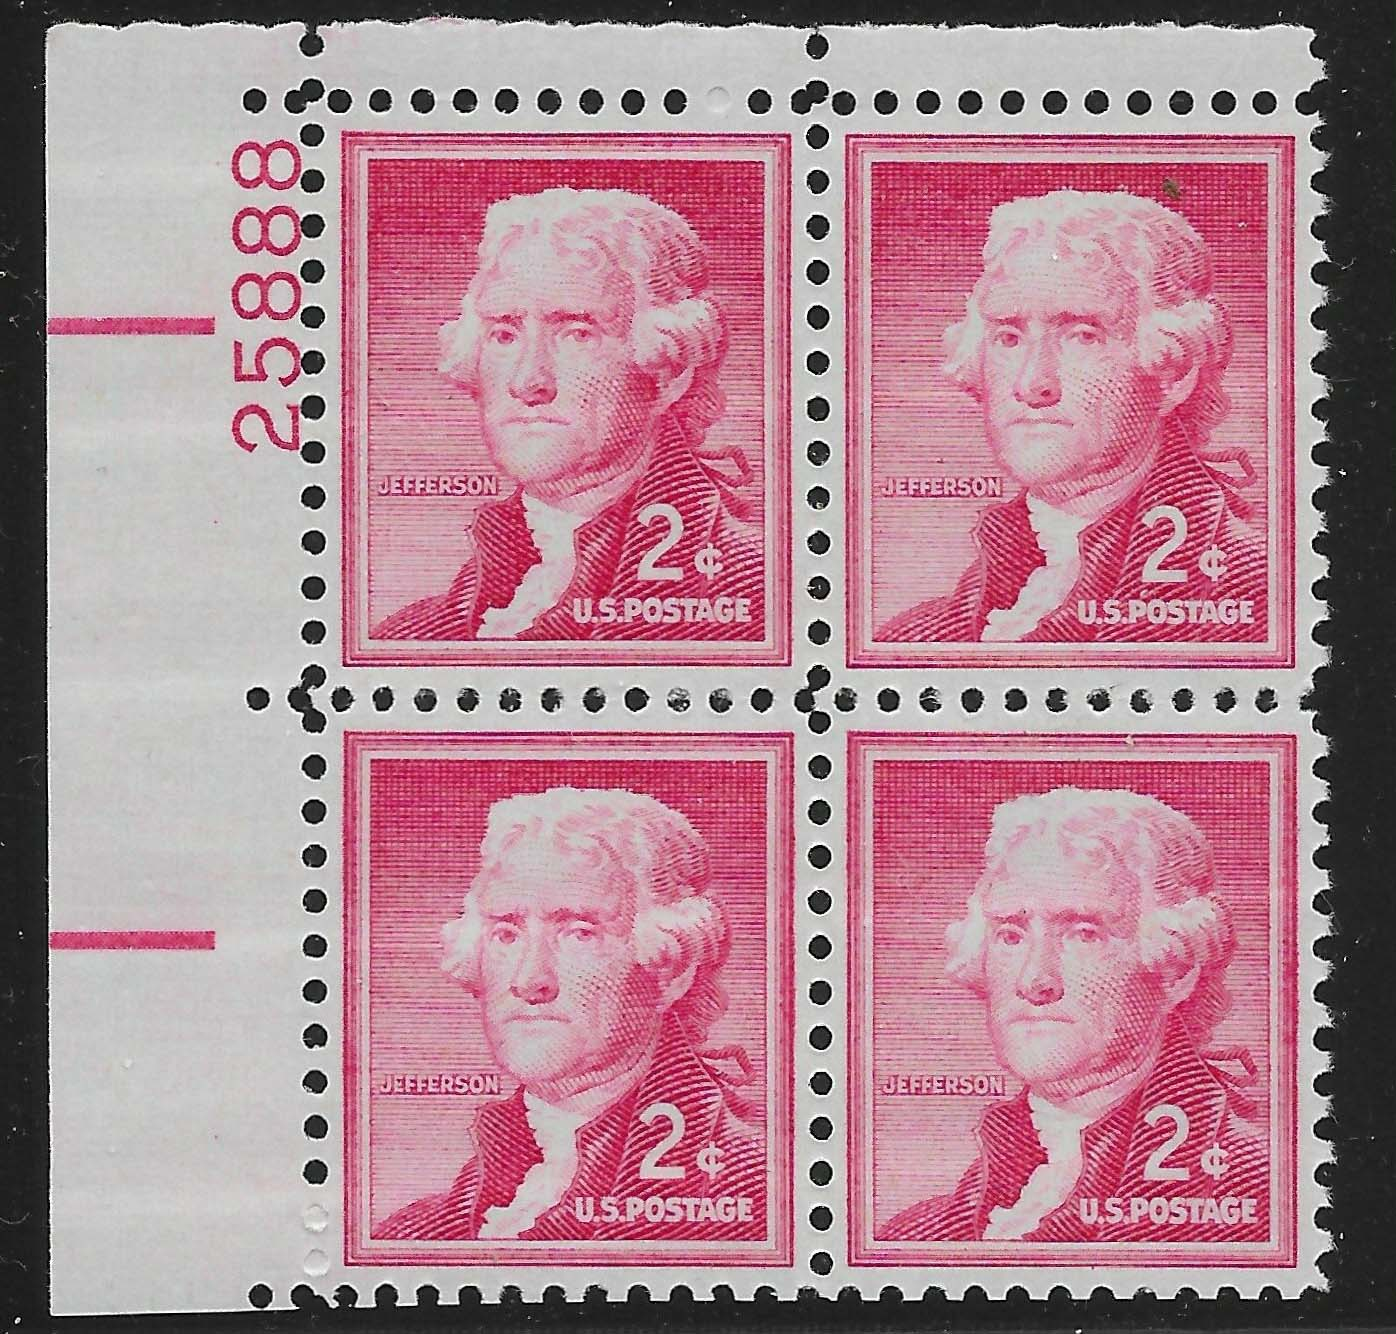 "Scott 1033 Plate Block (2 cents) <p> <a href=""/images/USA-Scott-1033-PB.jpg""><font color=green><b>View the image</a></b></font>"